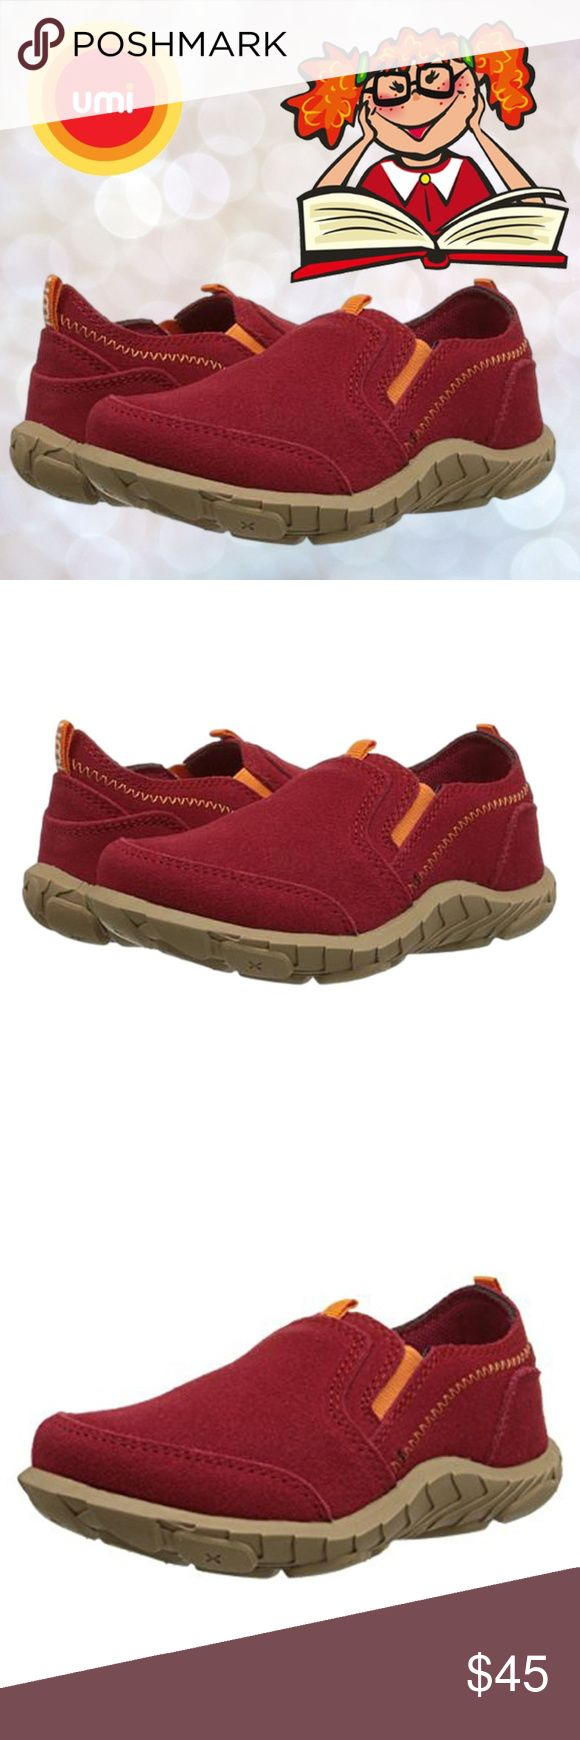 Umi Kids Girls Peyton Suede Slip-on Shoes Traction ✔This Umi Kids Peyton Girl's slip-on shoe provides ease and support during hopscotch, jump rope, kickball, and everything in between!  ✔Features:  Round toe, Easy and comfortable slip-on design, Dual elastic side gores, Contrasting topstitching, Front and back pull loops  ✔Material: Suede upper, textile mesh lining, Flexible manmade rubber traction outsole  ✔Size: US 8.5 Medium Toddler, EU 25  ✔Color: Red, Orange  ✔Condition: Brand New in…